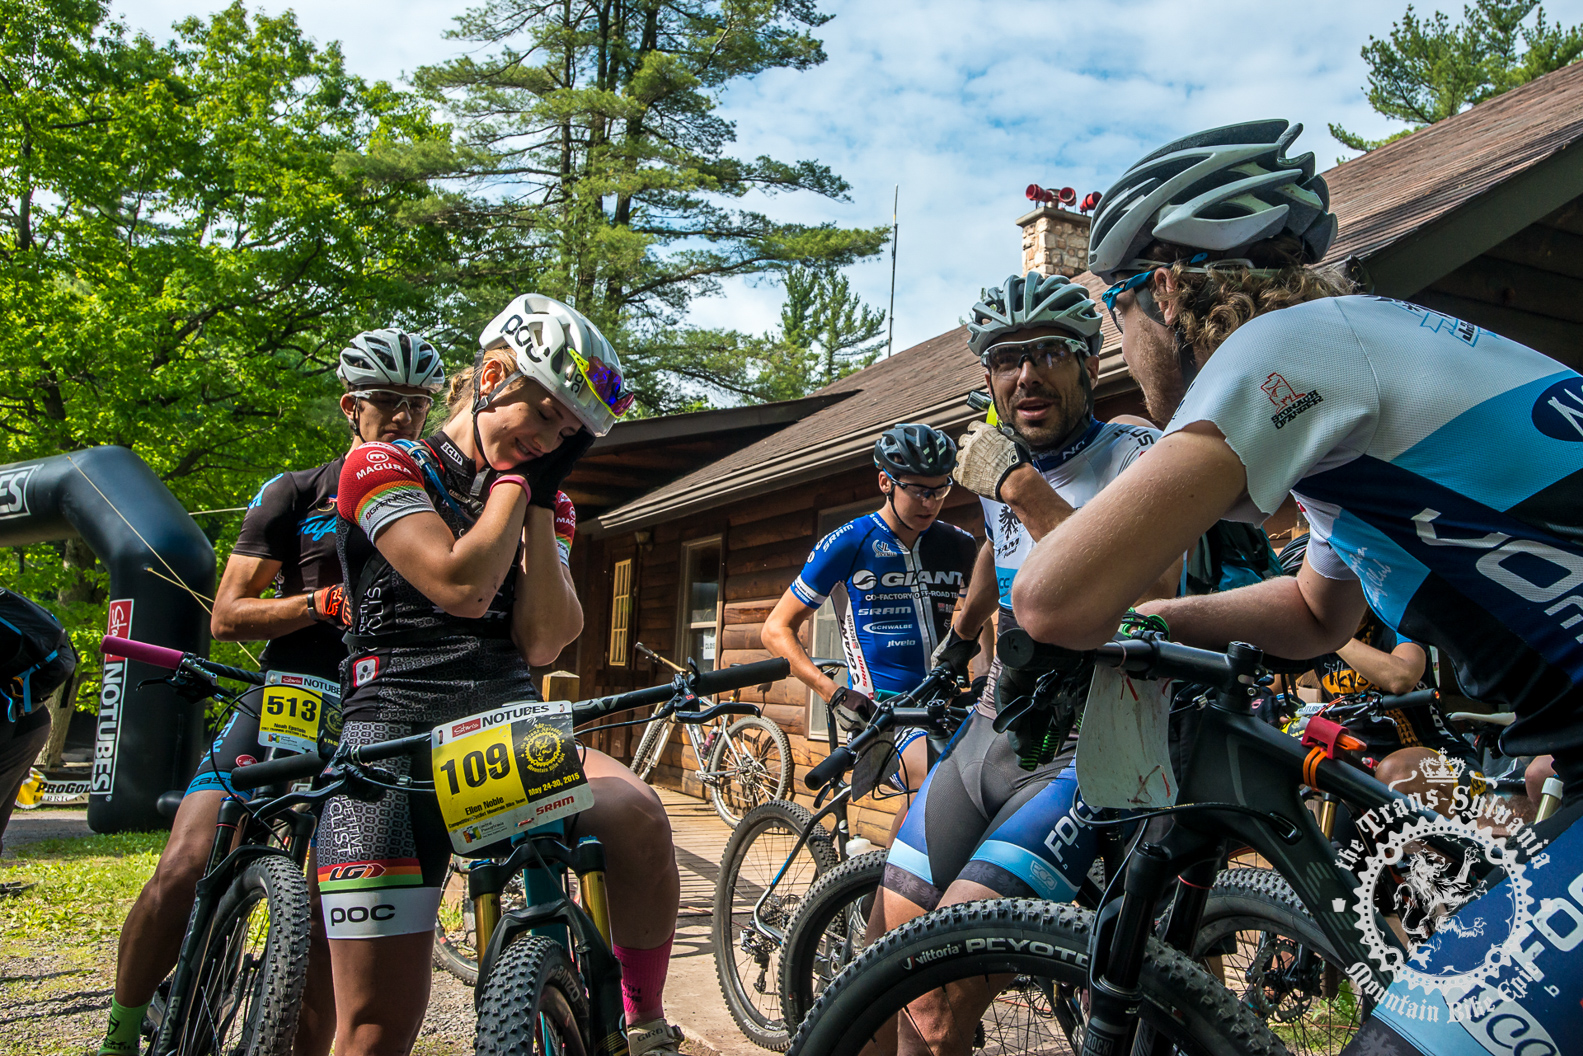 Riders chat at the start.